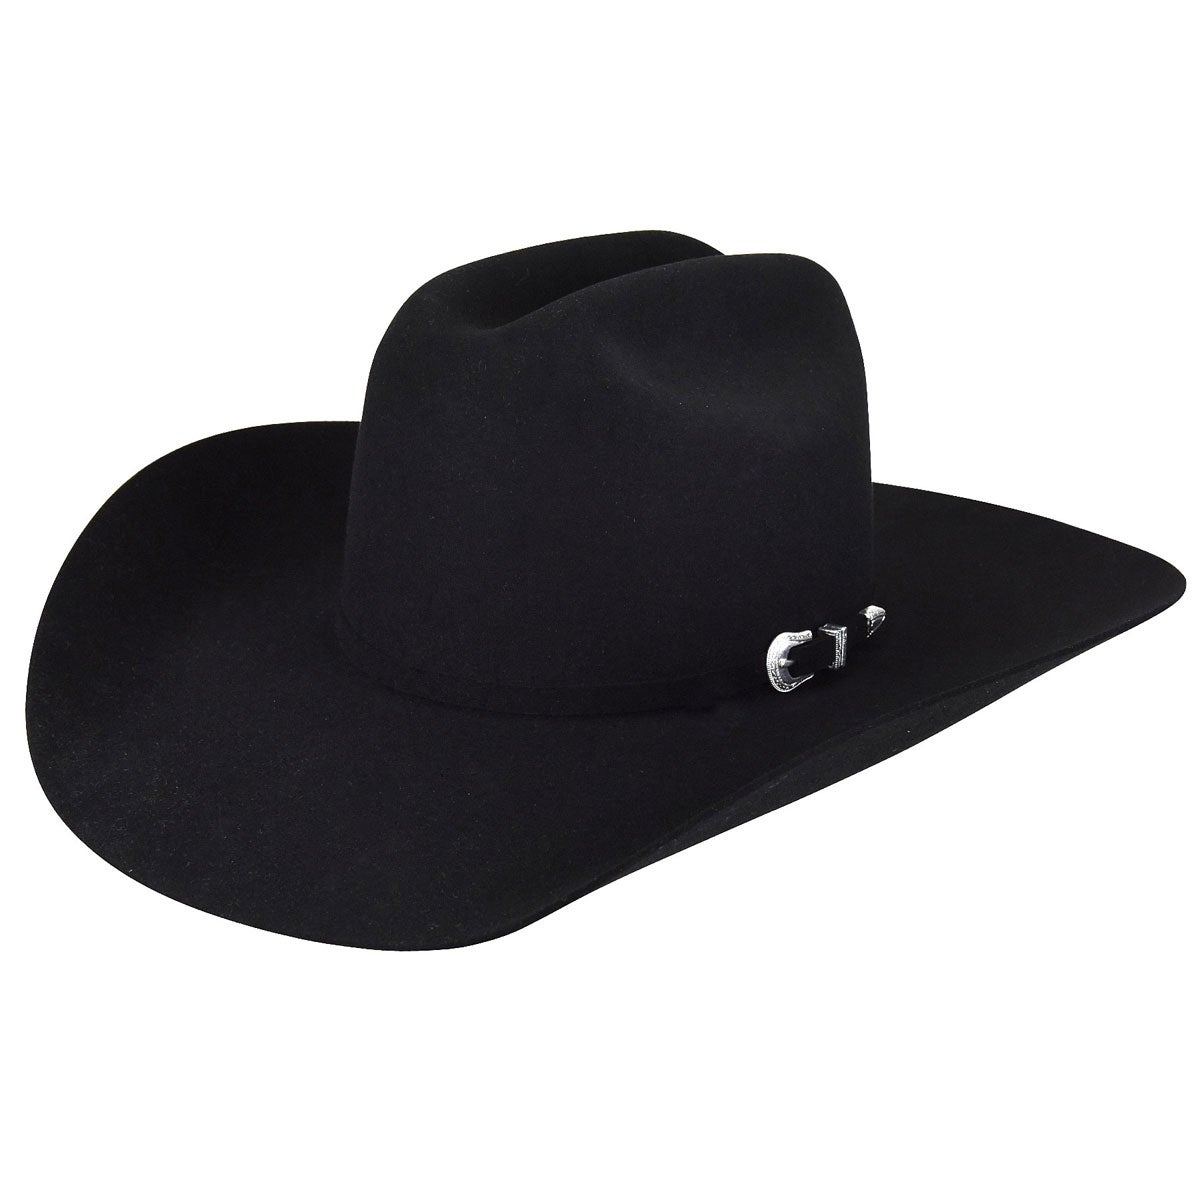 Bailey Western Courtright 7X Western Hat in Black